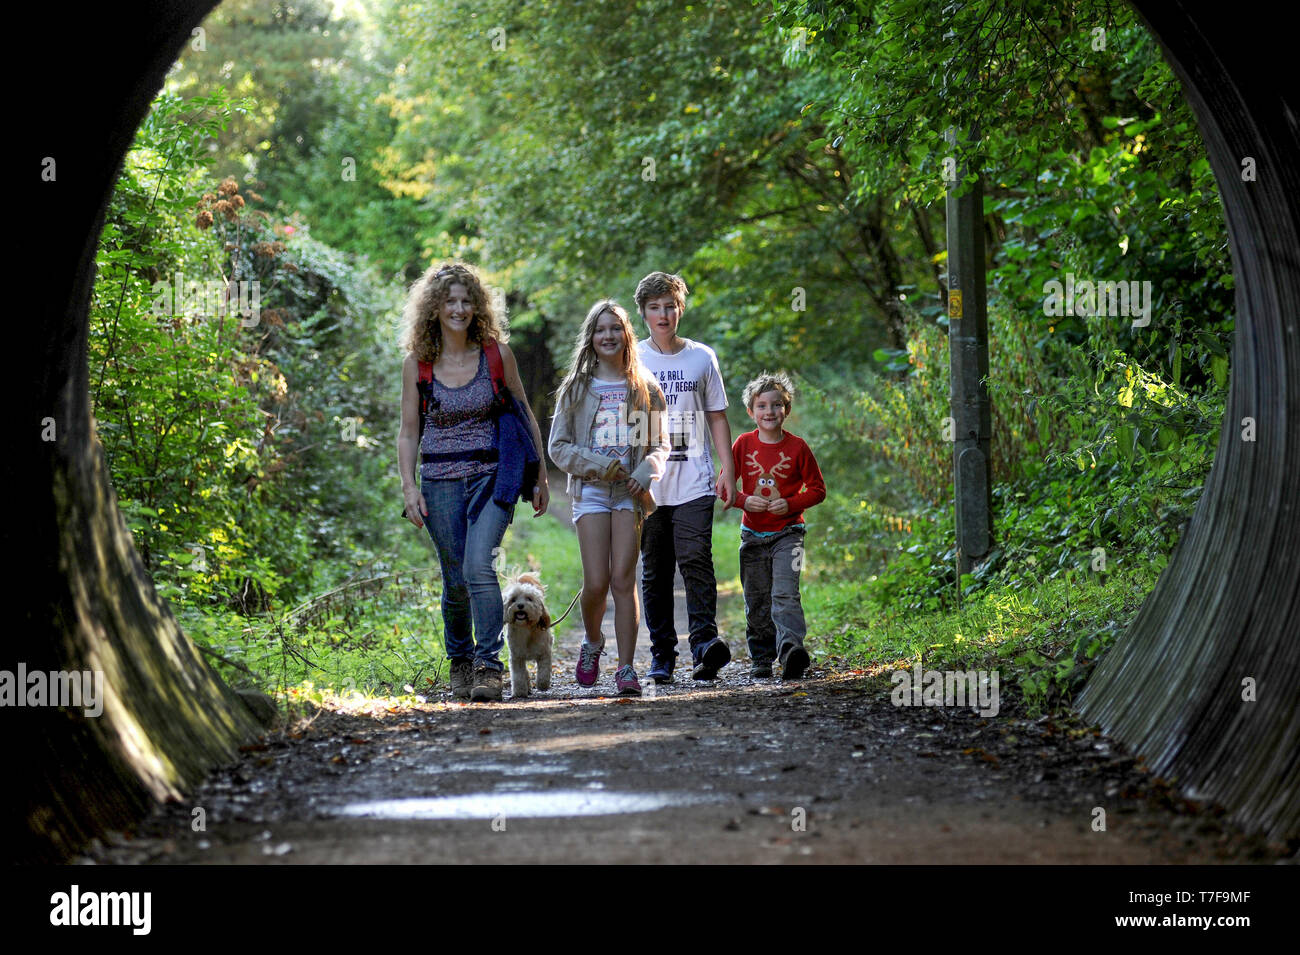 Meningitis Now Five Valleys Walk 2016.  Pictured, L- R Caroline Auckland with Willow, Louis, Freddie aged 10,13 and 6 withTuppence the dog - Stock Image